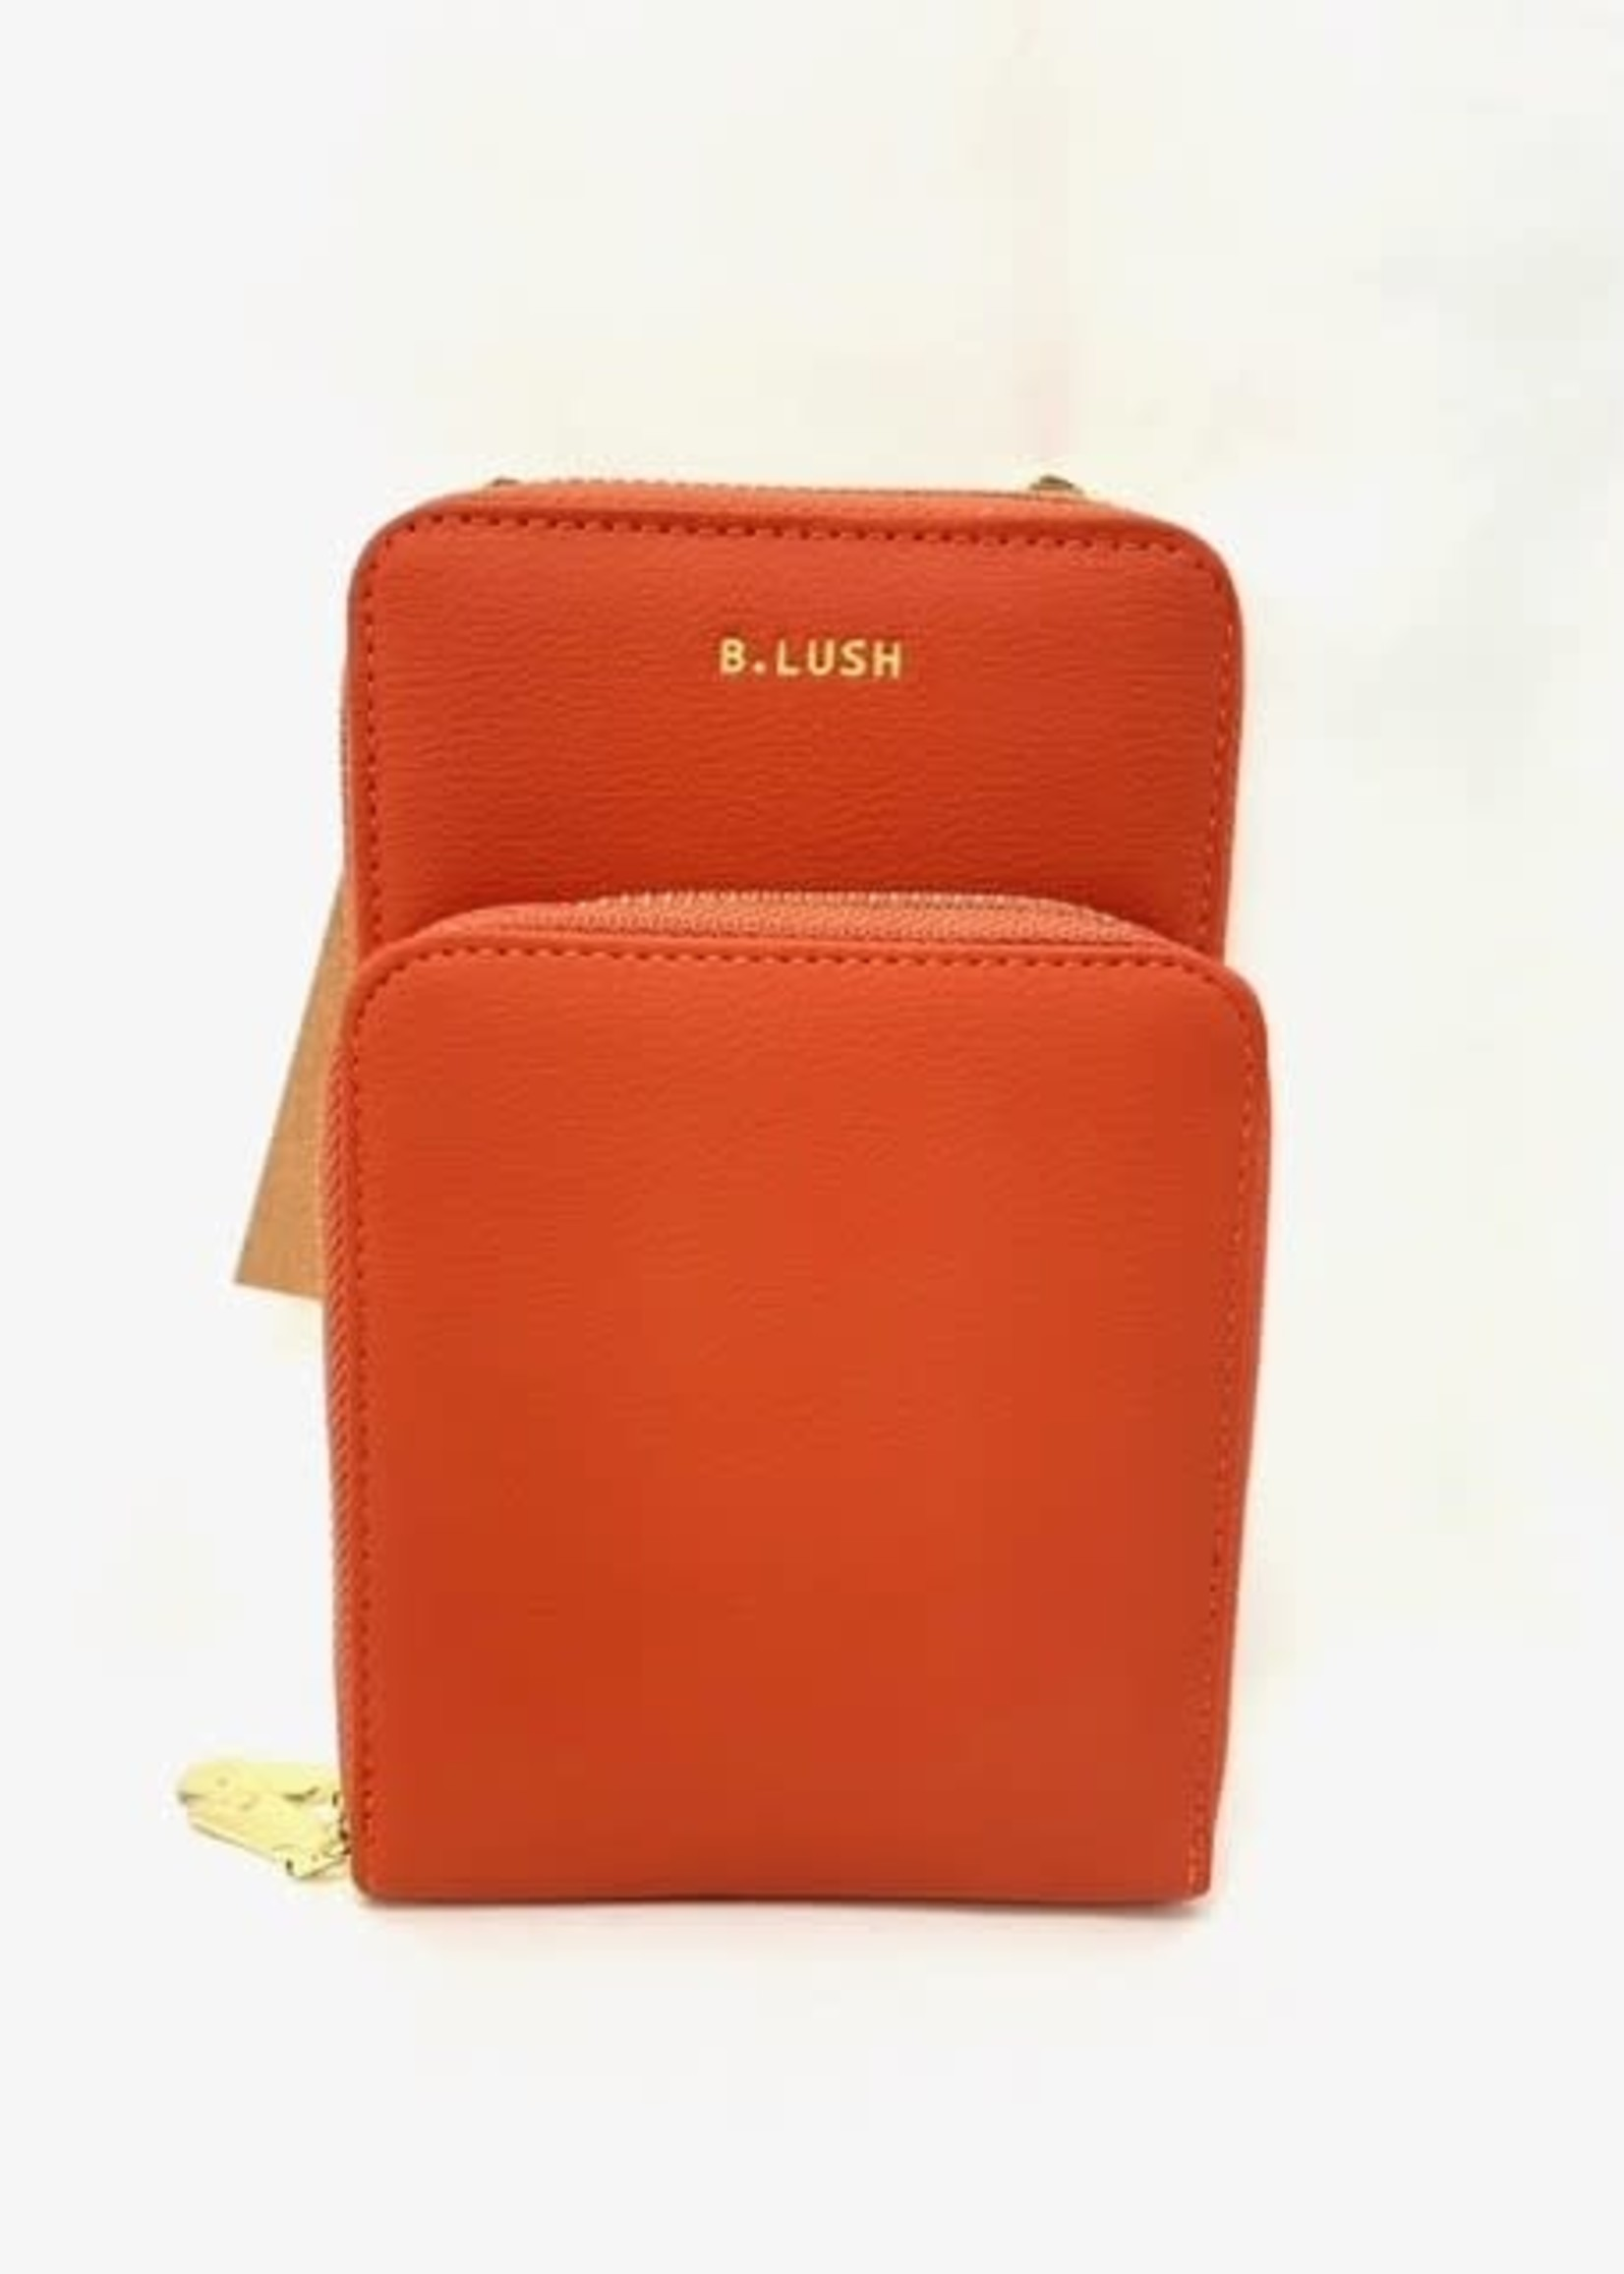 Blush messenger purse, available in three colors